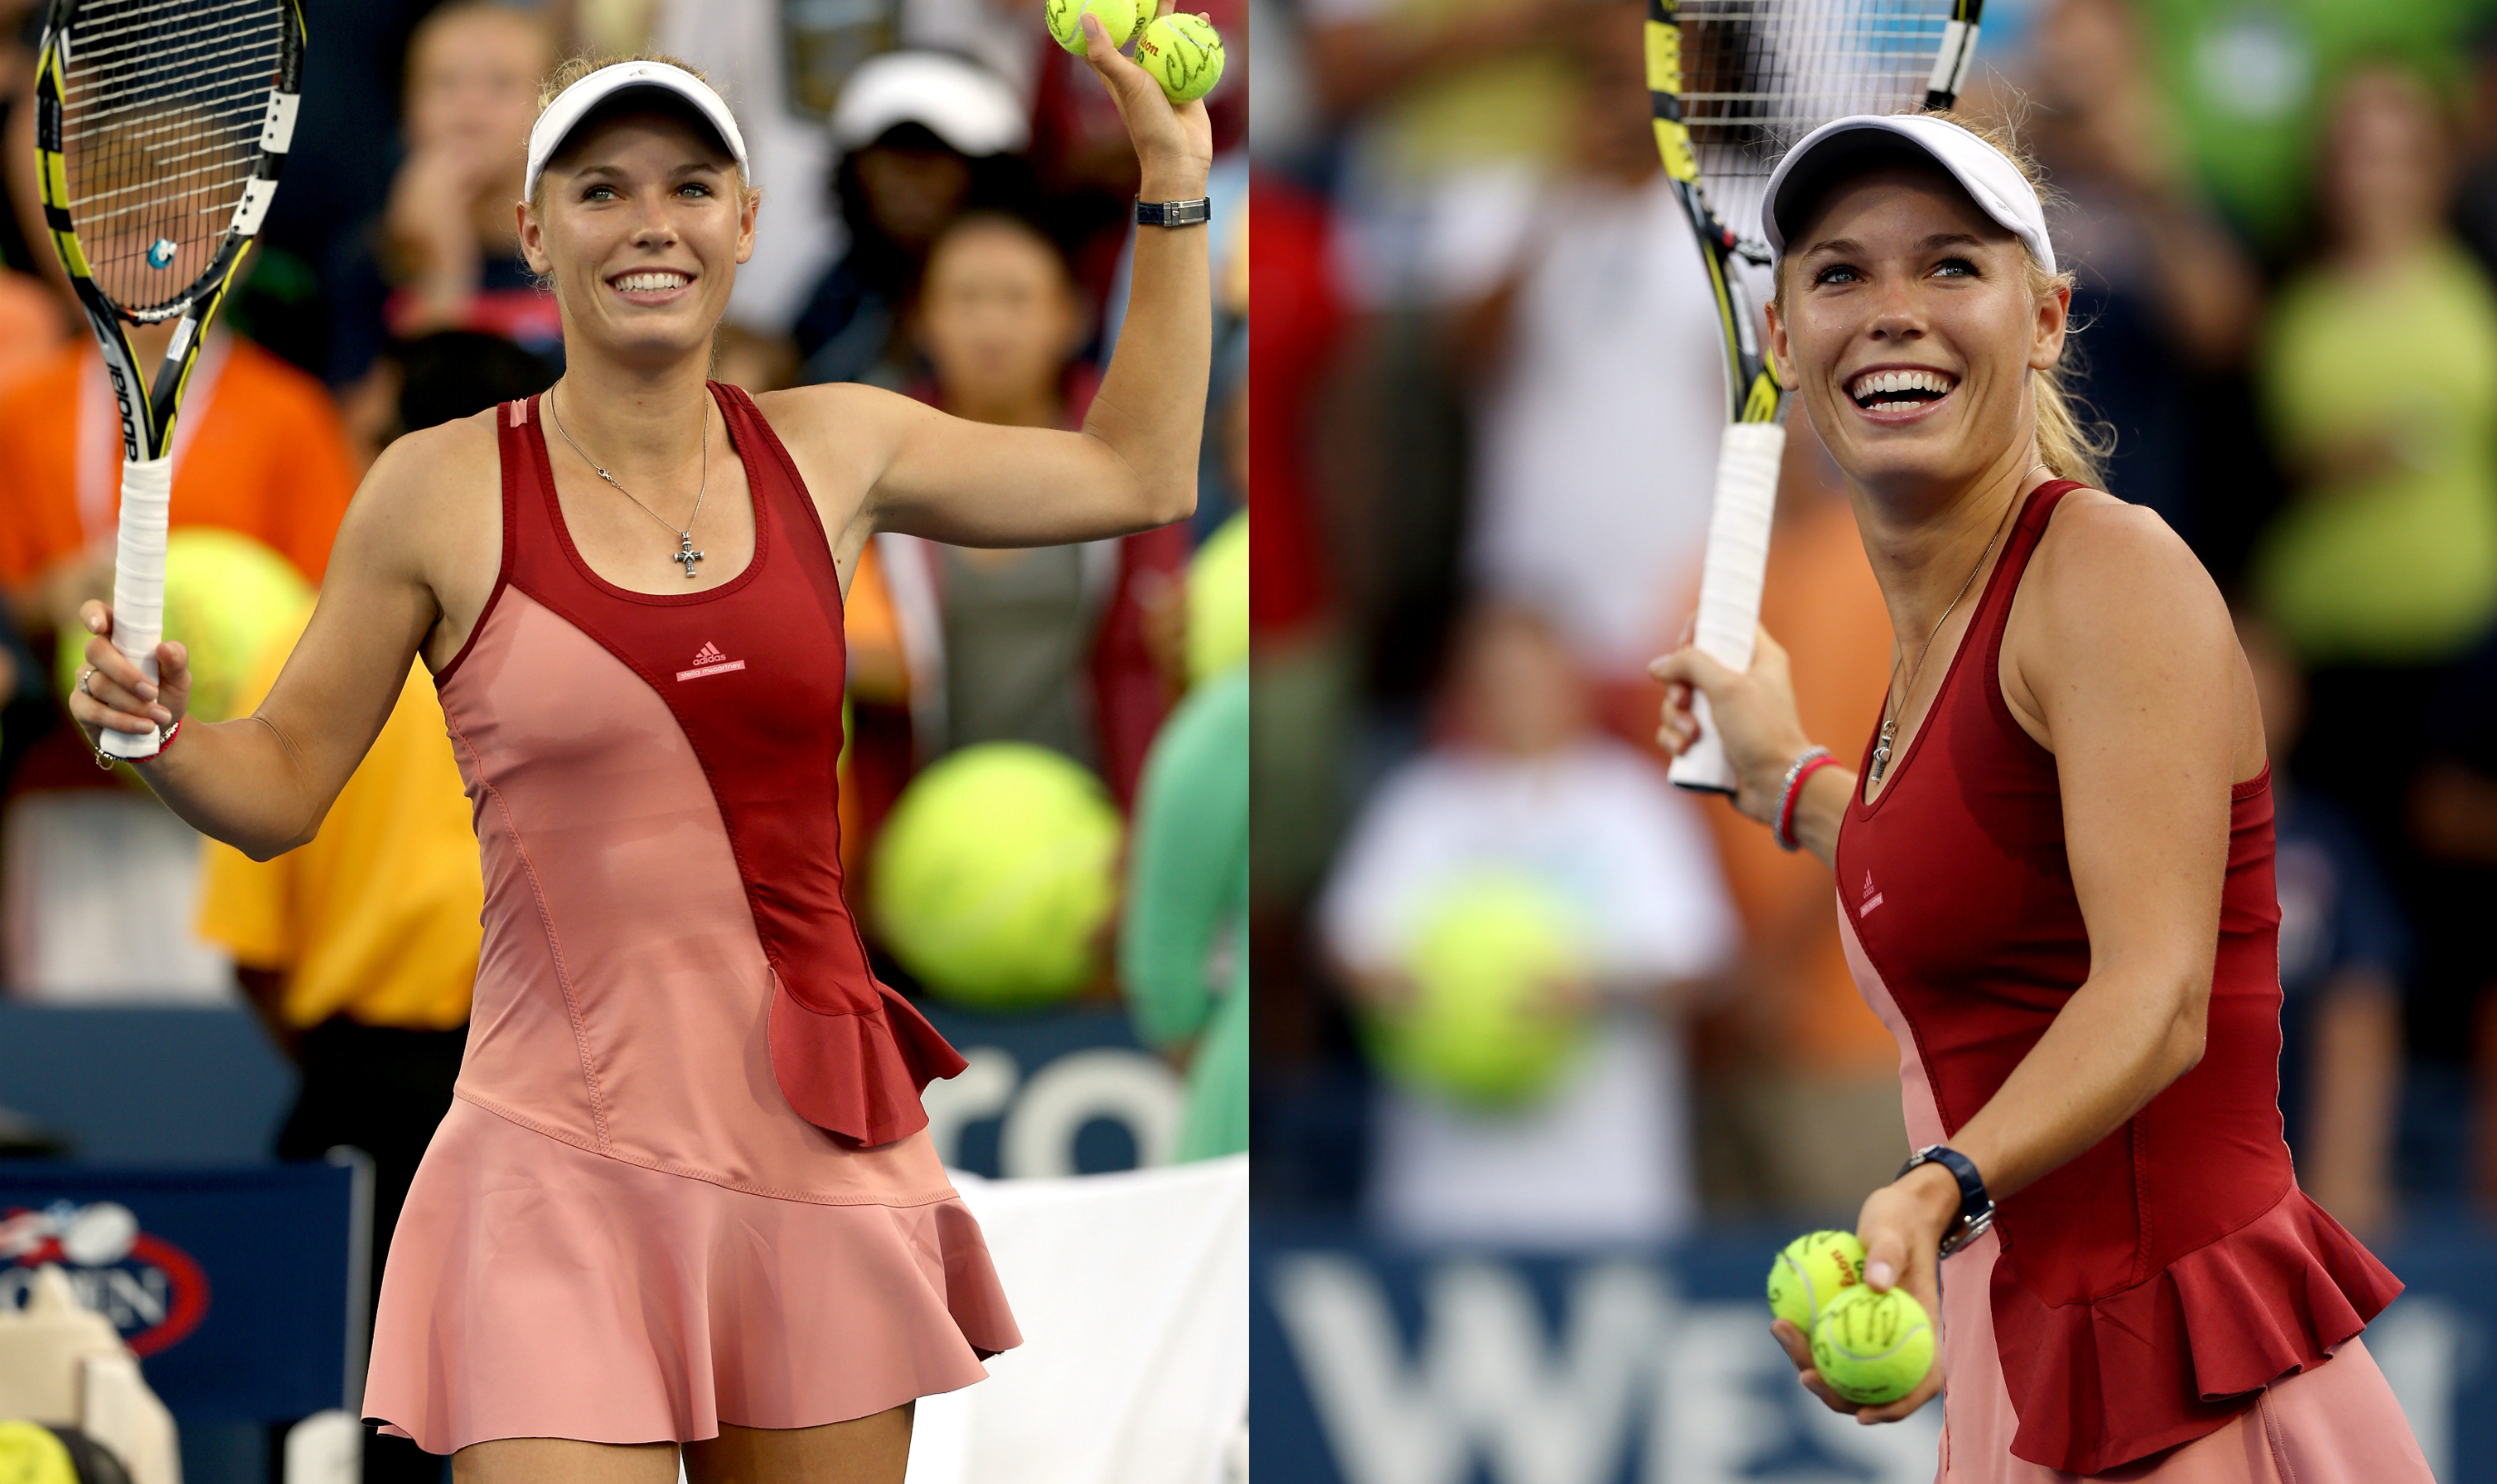 Although she had a good run, Wozniacki wore more unnecessary ruffles.